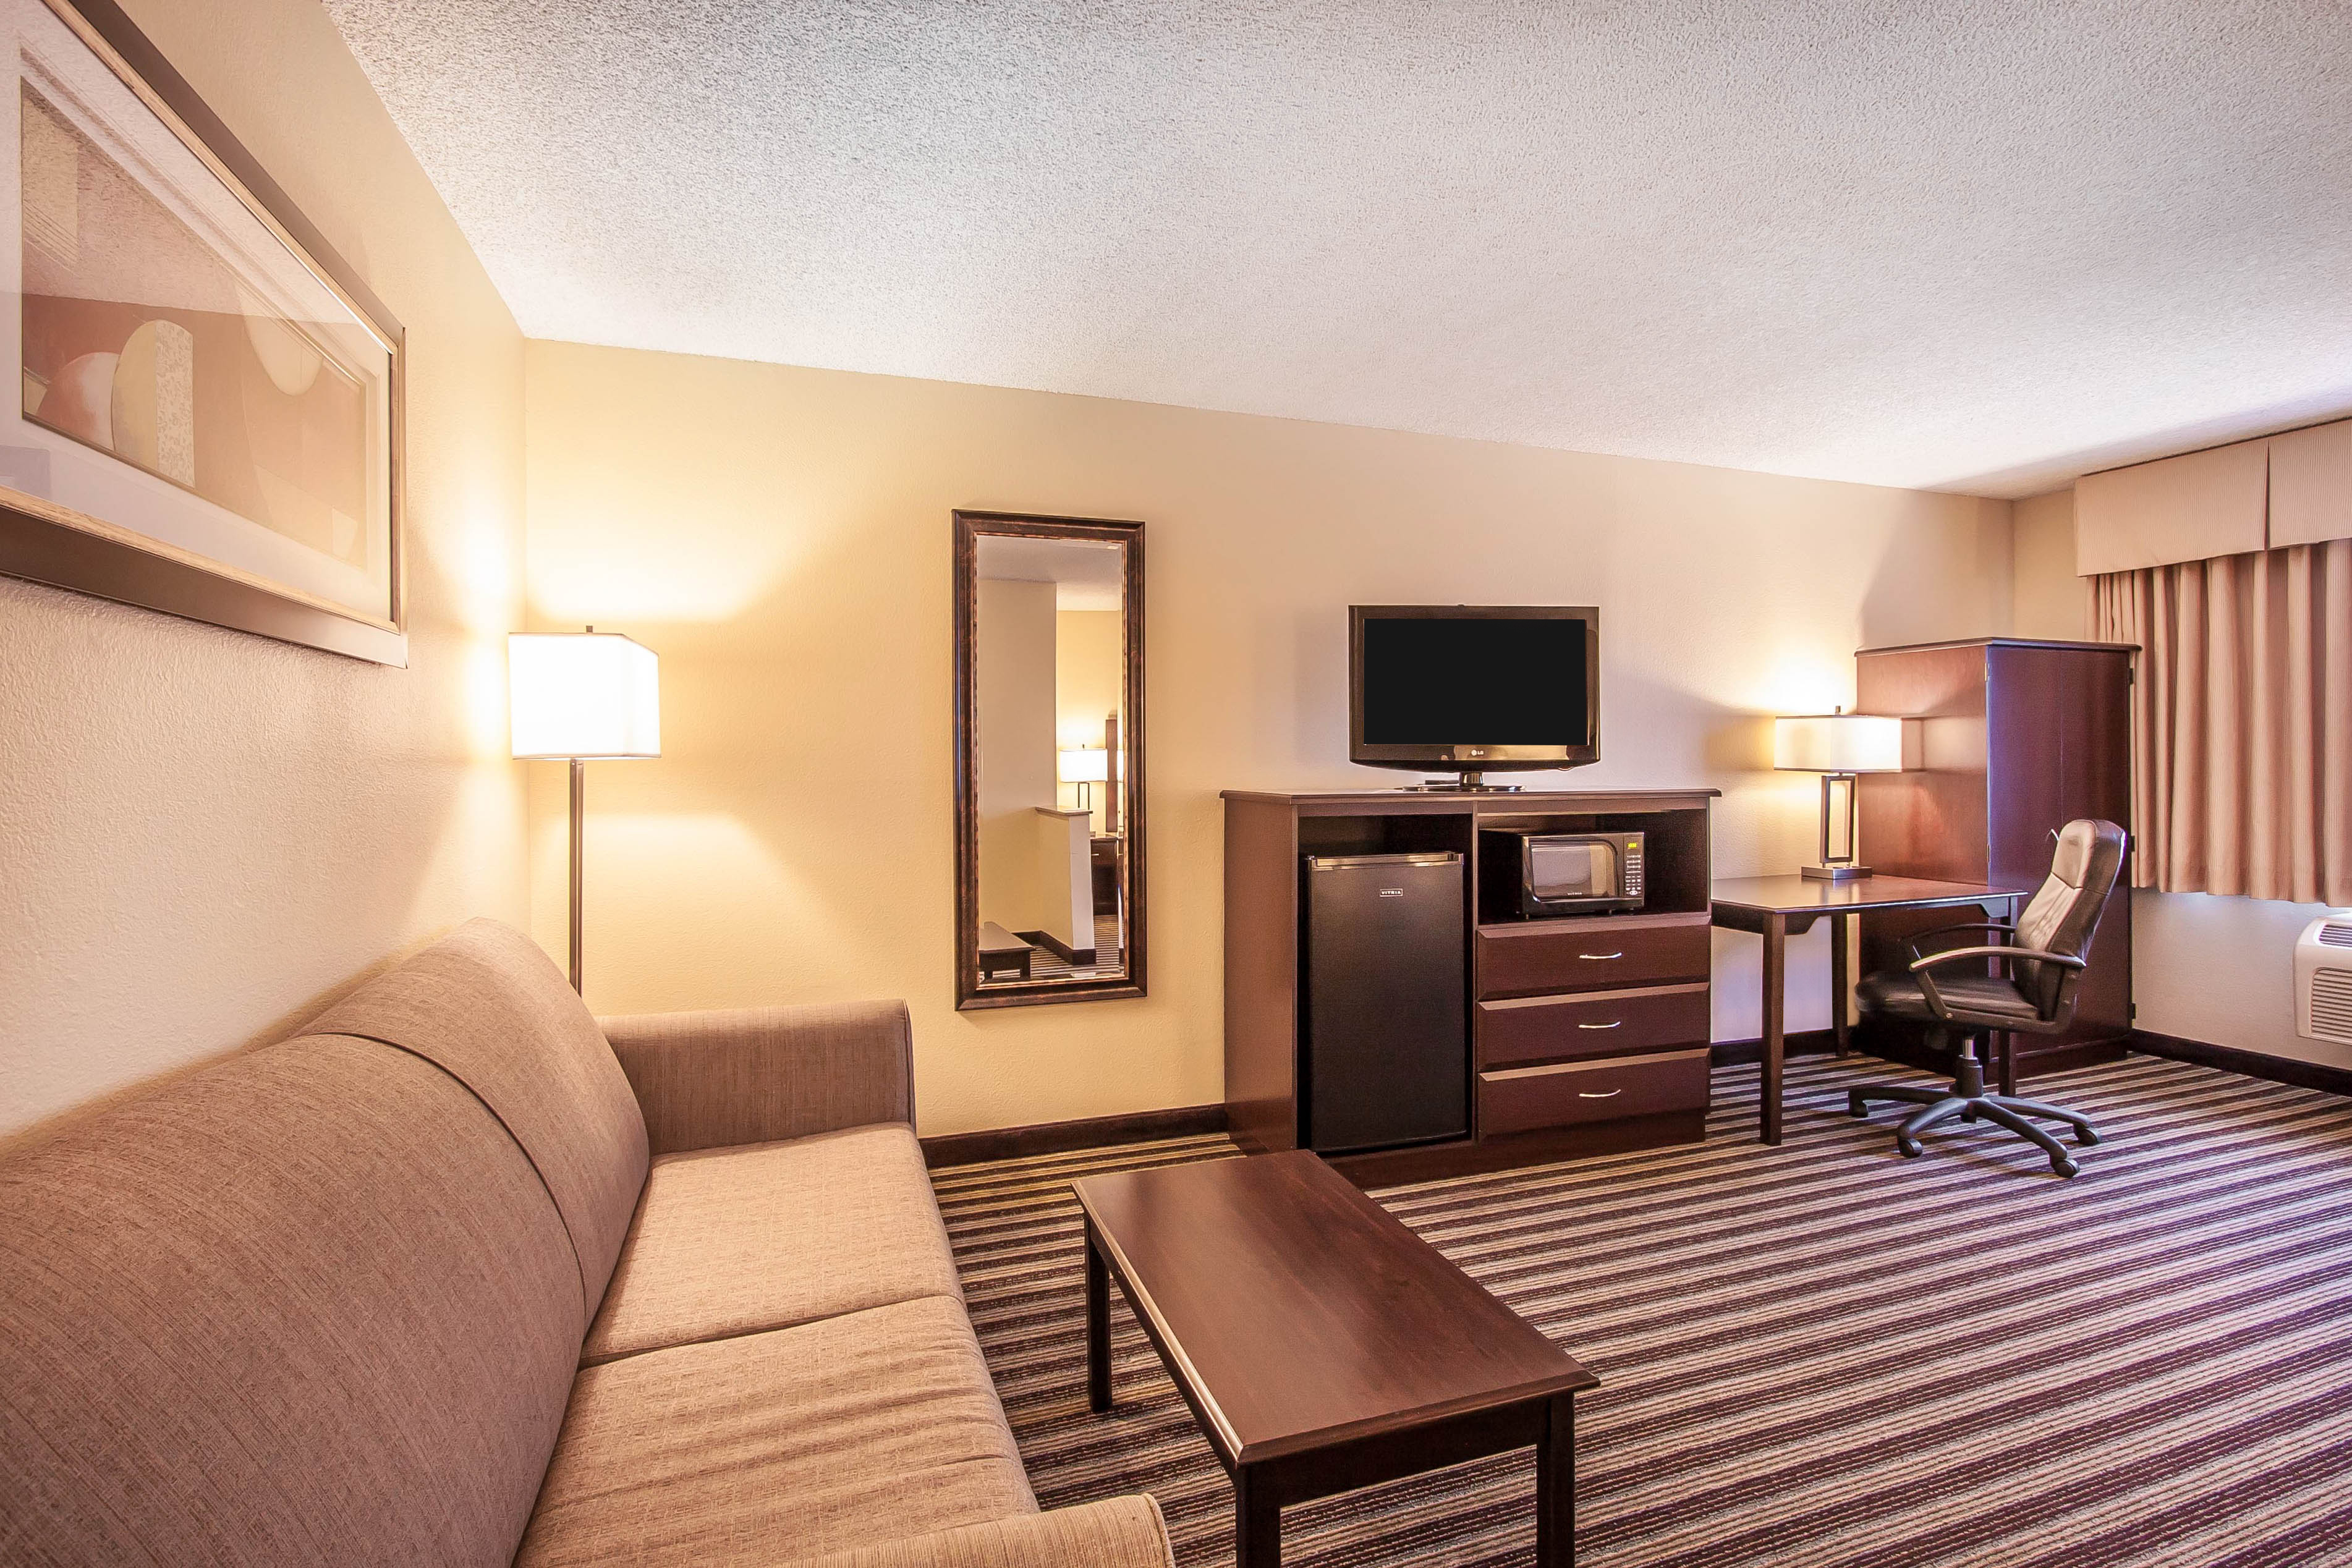 Quality Inn Amp Suites In Vancouver Wa Whitepages